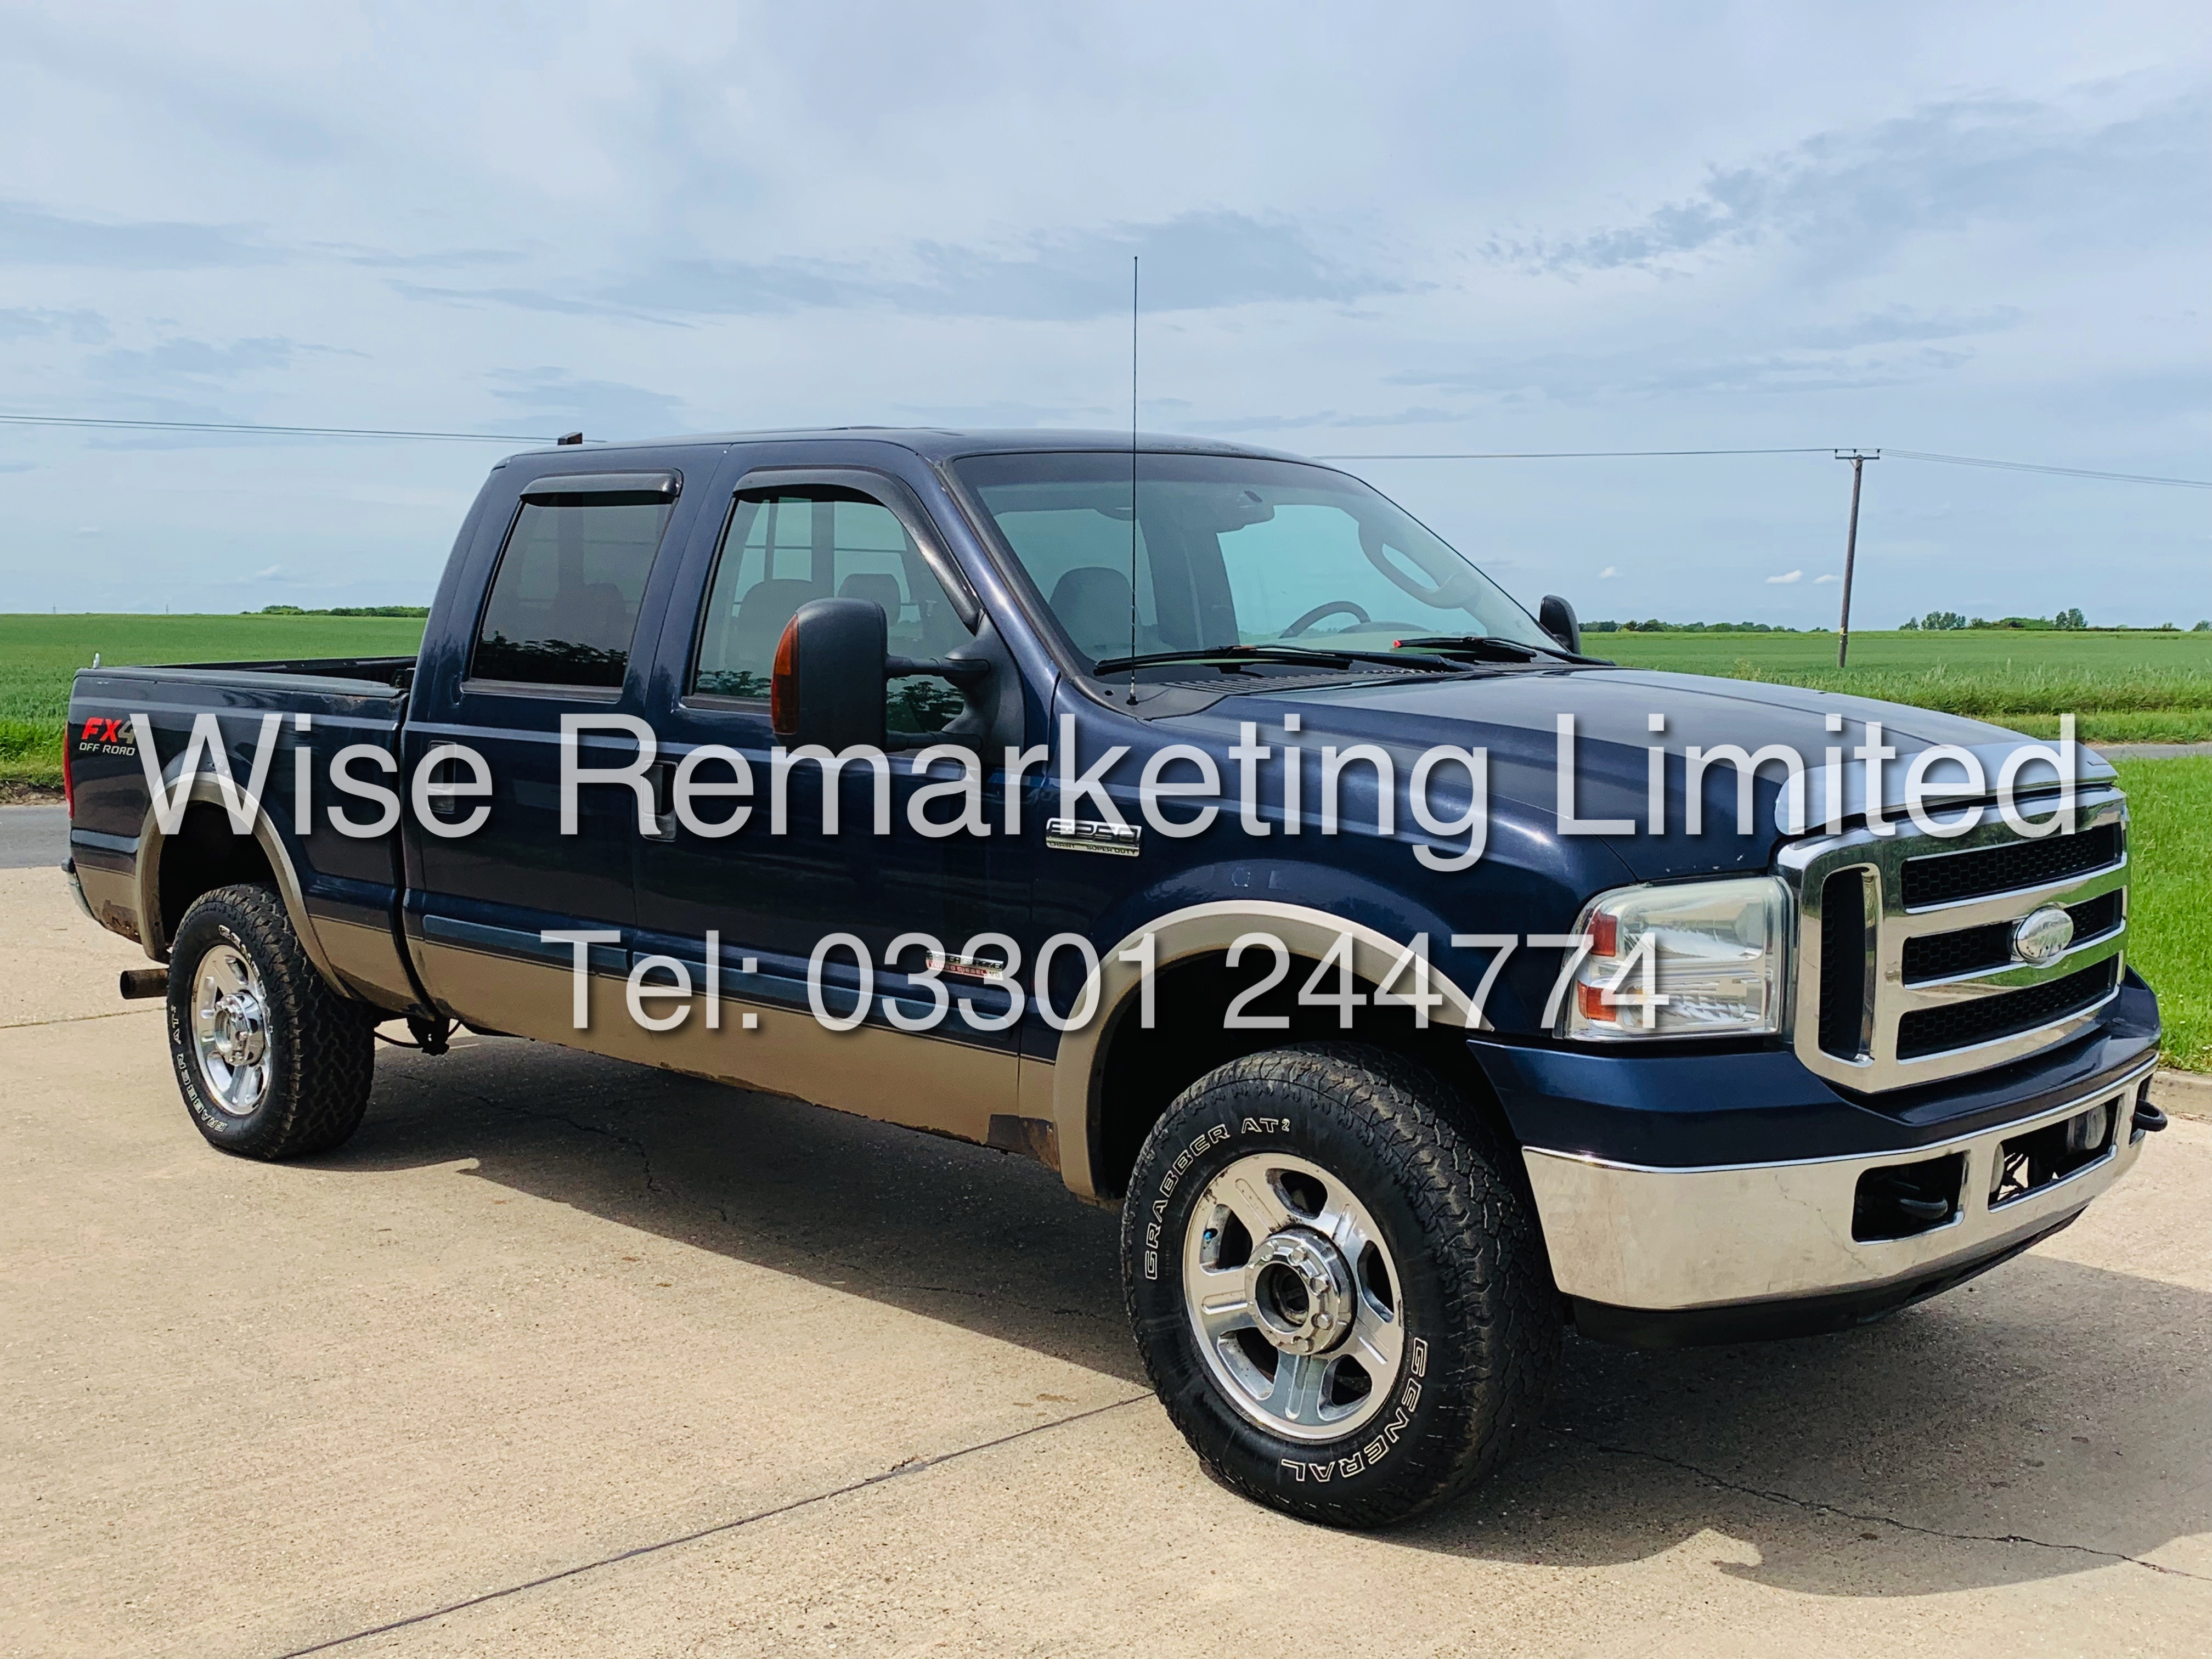 FORD F-250 6.0L V8**DIESEL**2007**4X4*LARIAT SPEC**DOUBLE-CAB**ULTRA RARE**FRESH IMPORT** - Image 5 of 18